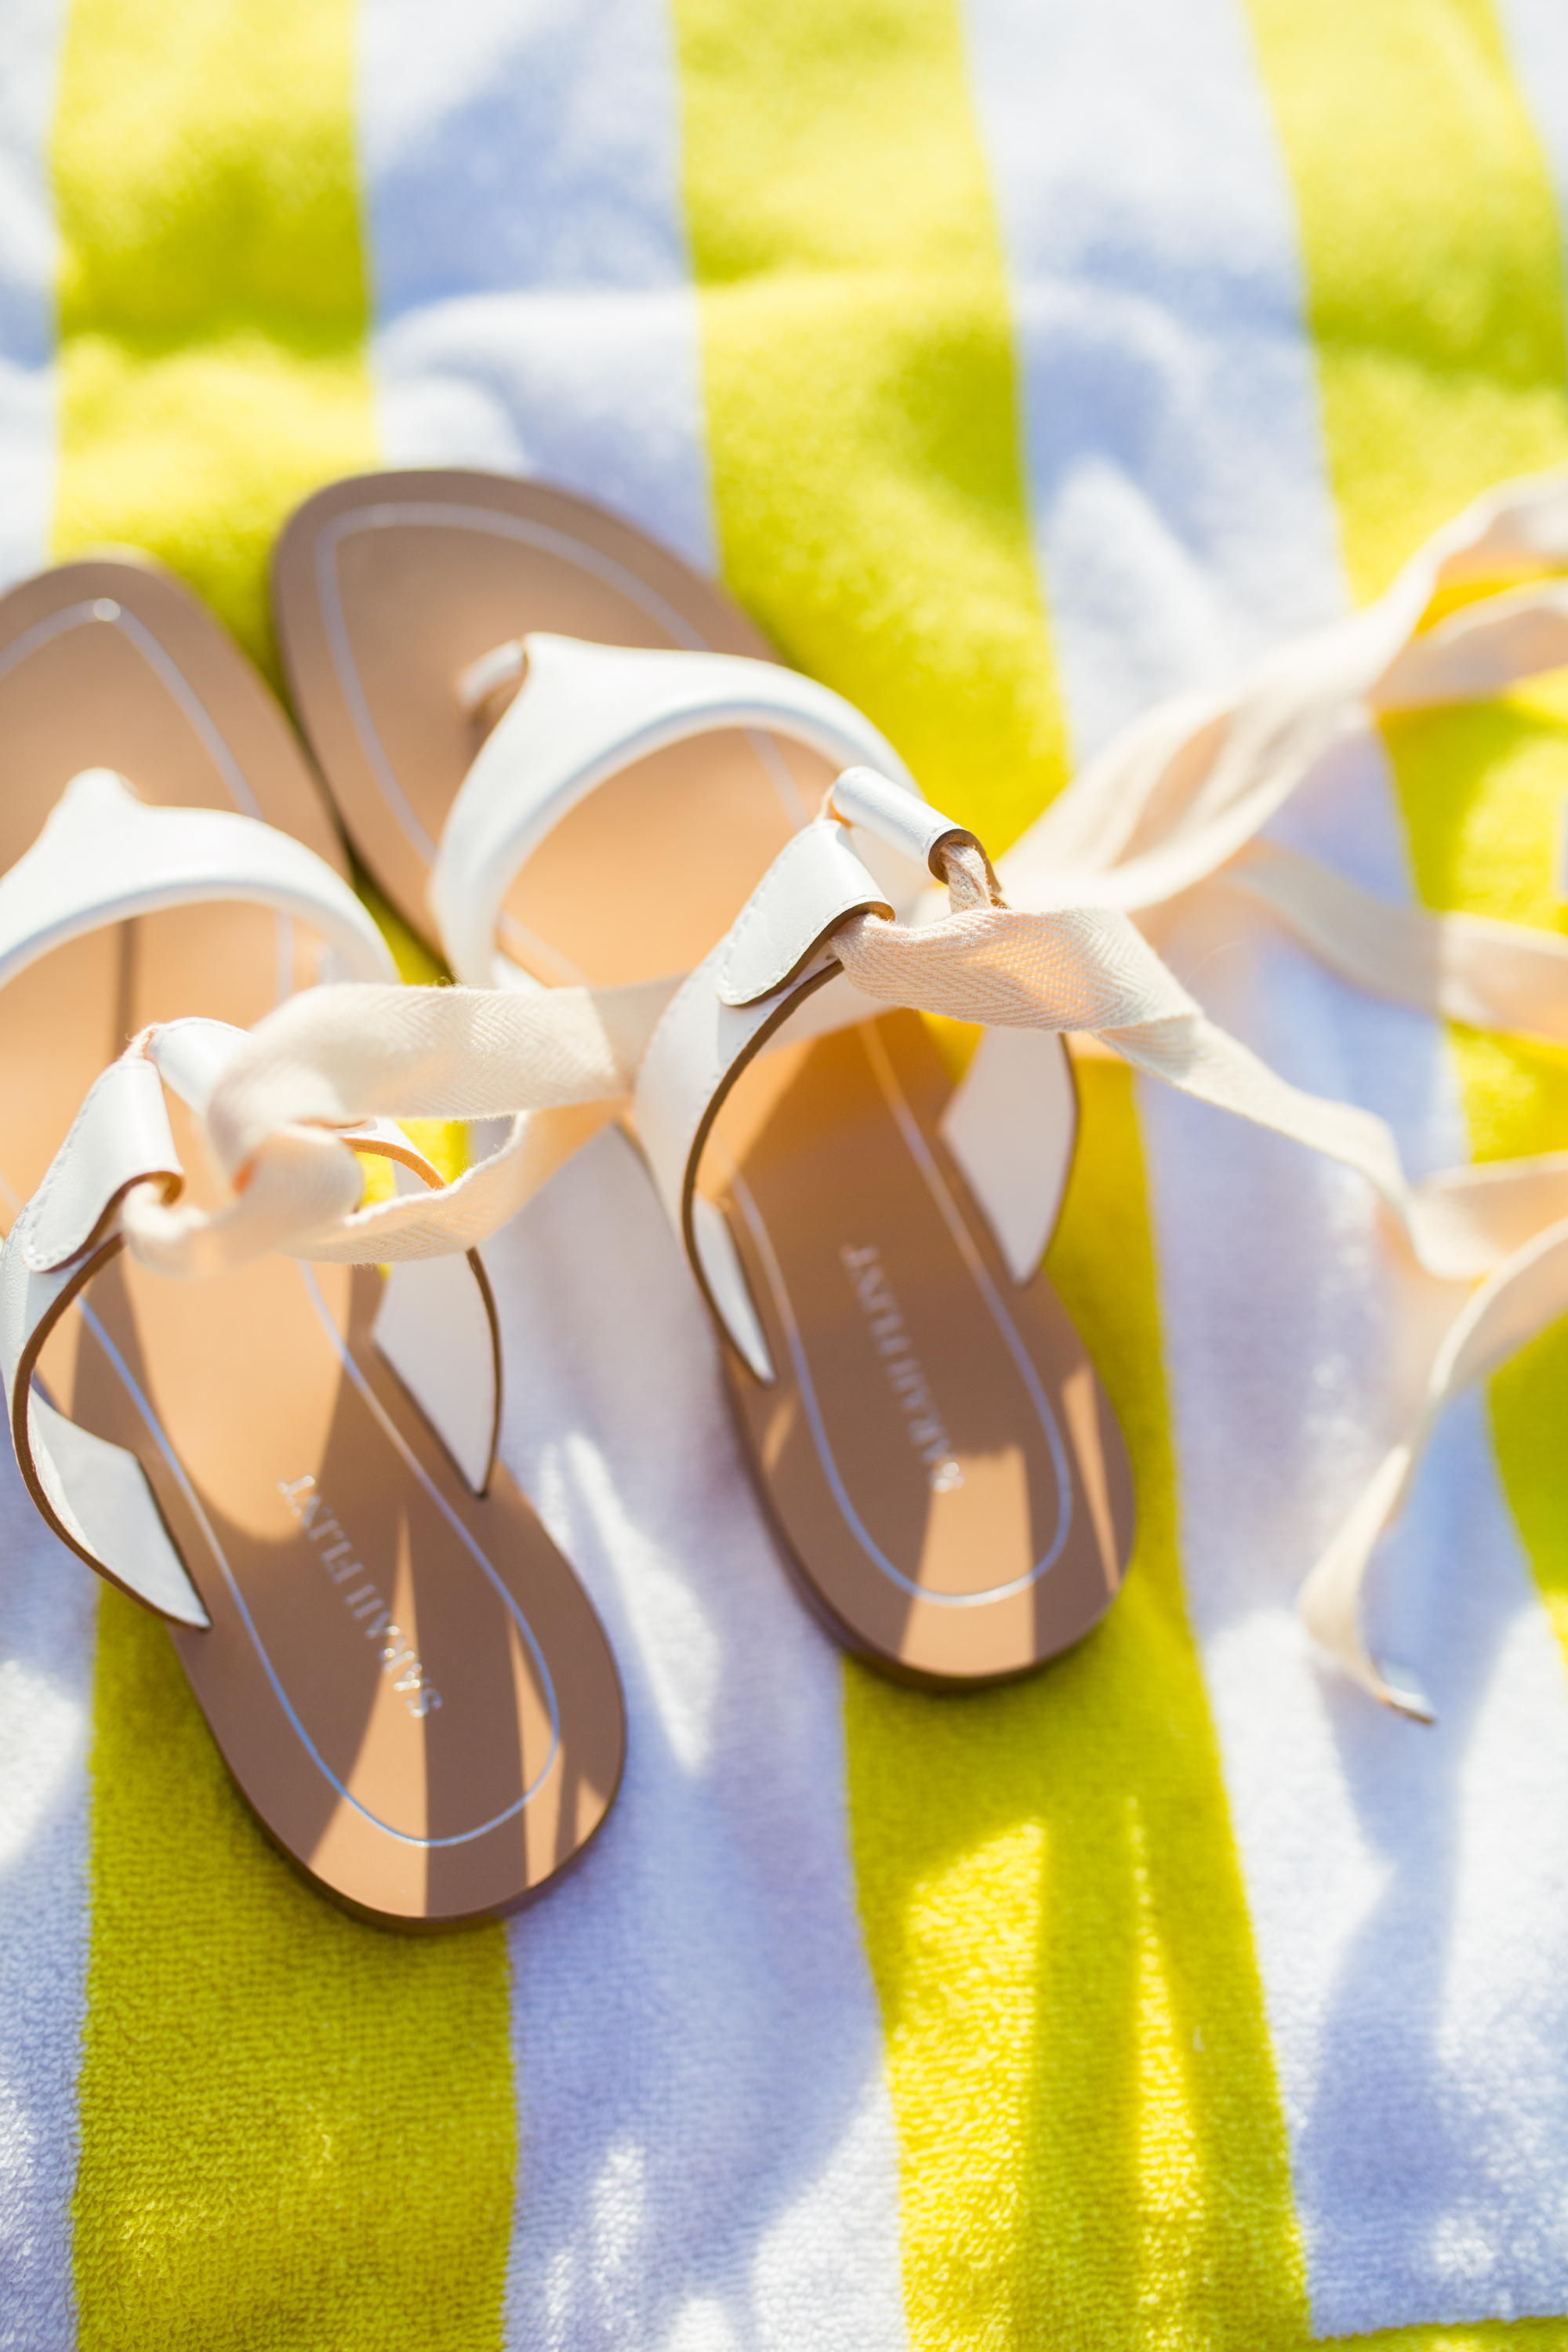 sandals on a beach towel for Sarah Flint Grear Sandals Review